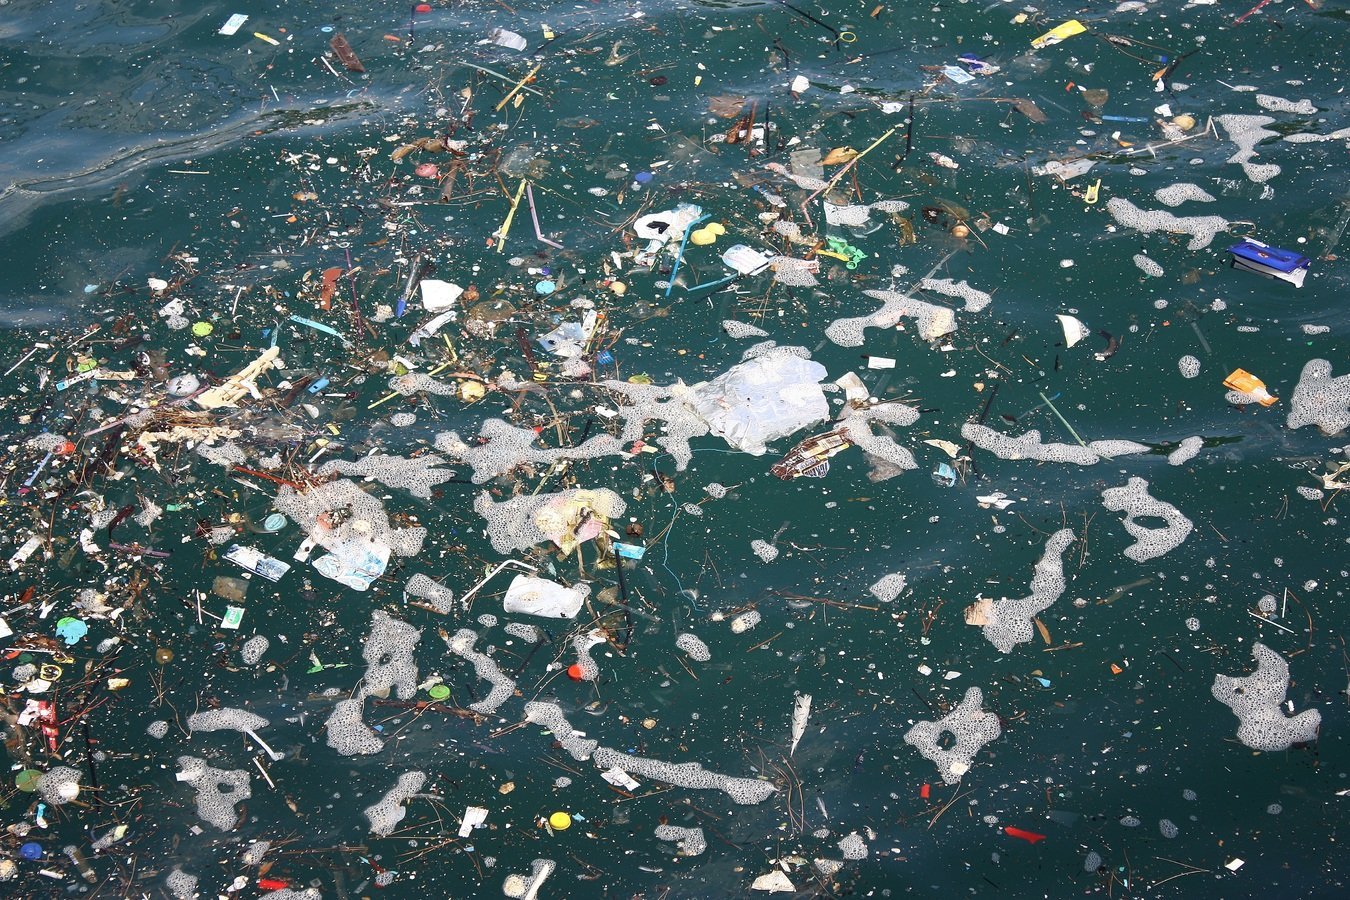 It is estimated that more than 150 million tonnes of plastics have already accumulated in the world's oceans.